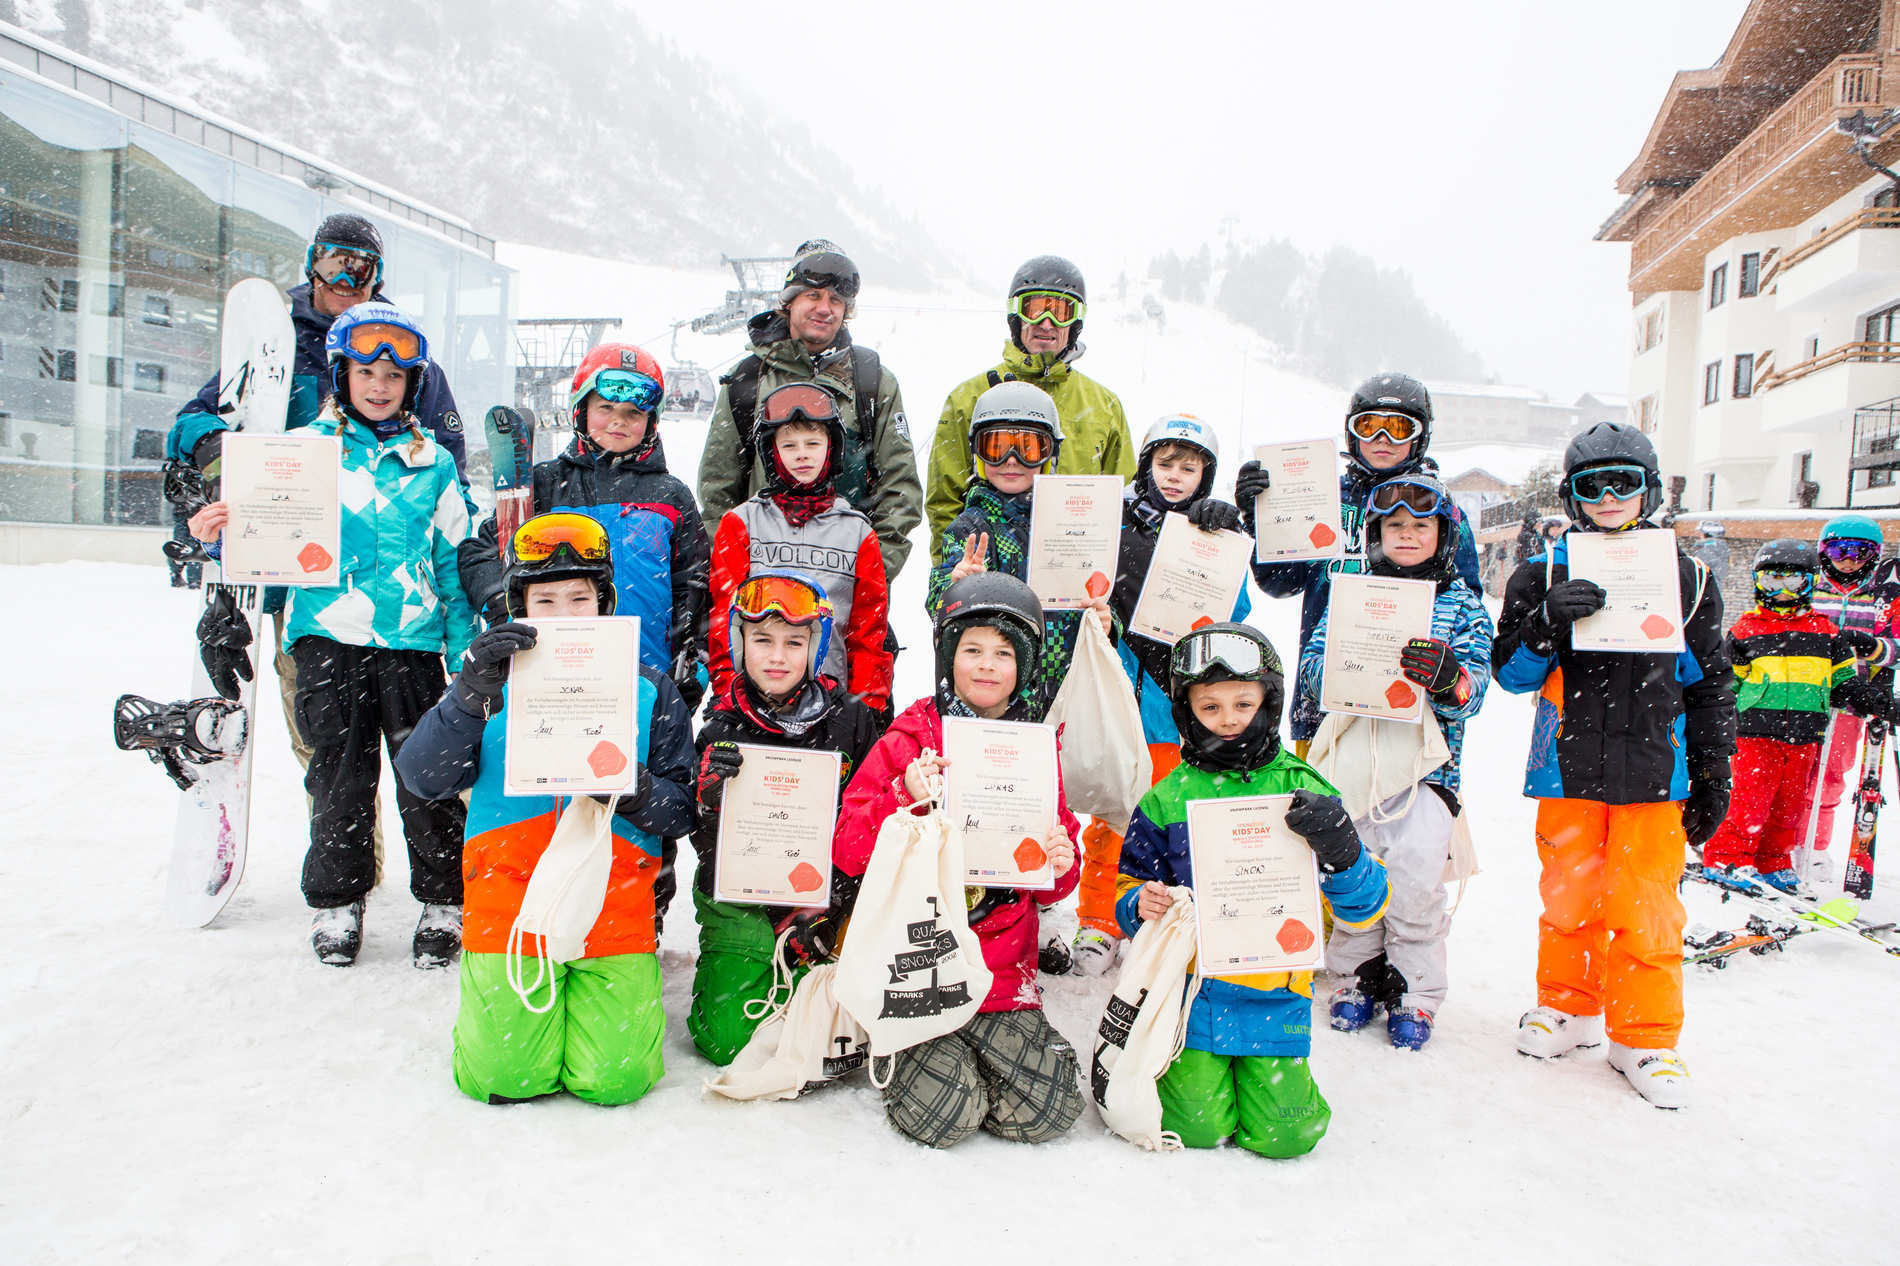 web obergurgl 17 02 2017 lifestyle fs unknown patrick steiner qparks 039